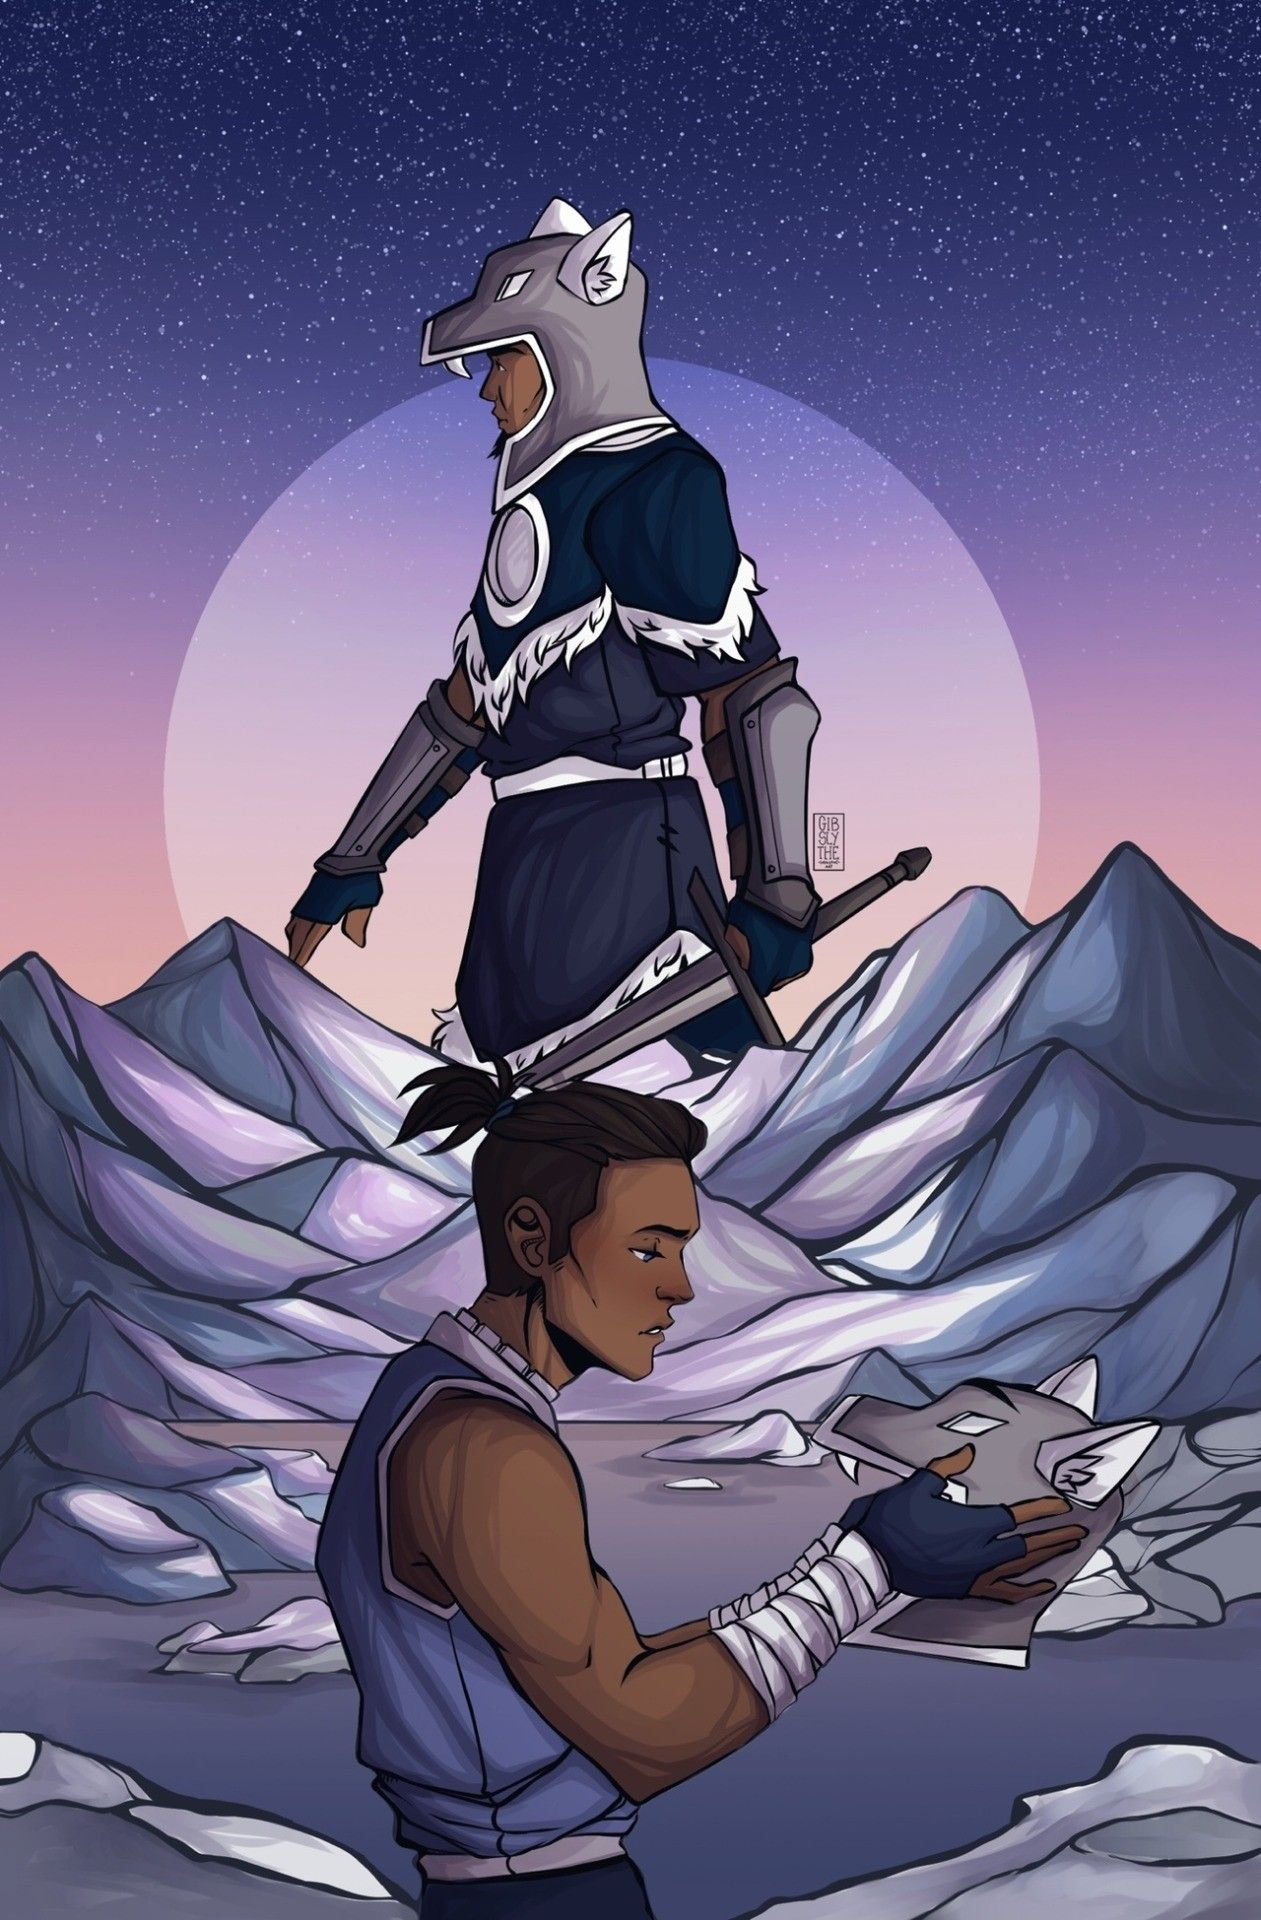 Pin By Mex On Avatar Zuko In 2020 Avatar Airbender The Last Avatar Avatar Aang